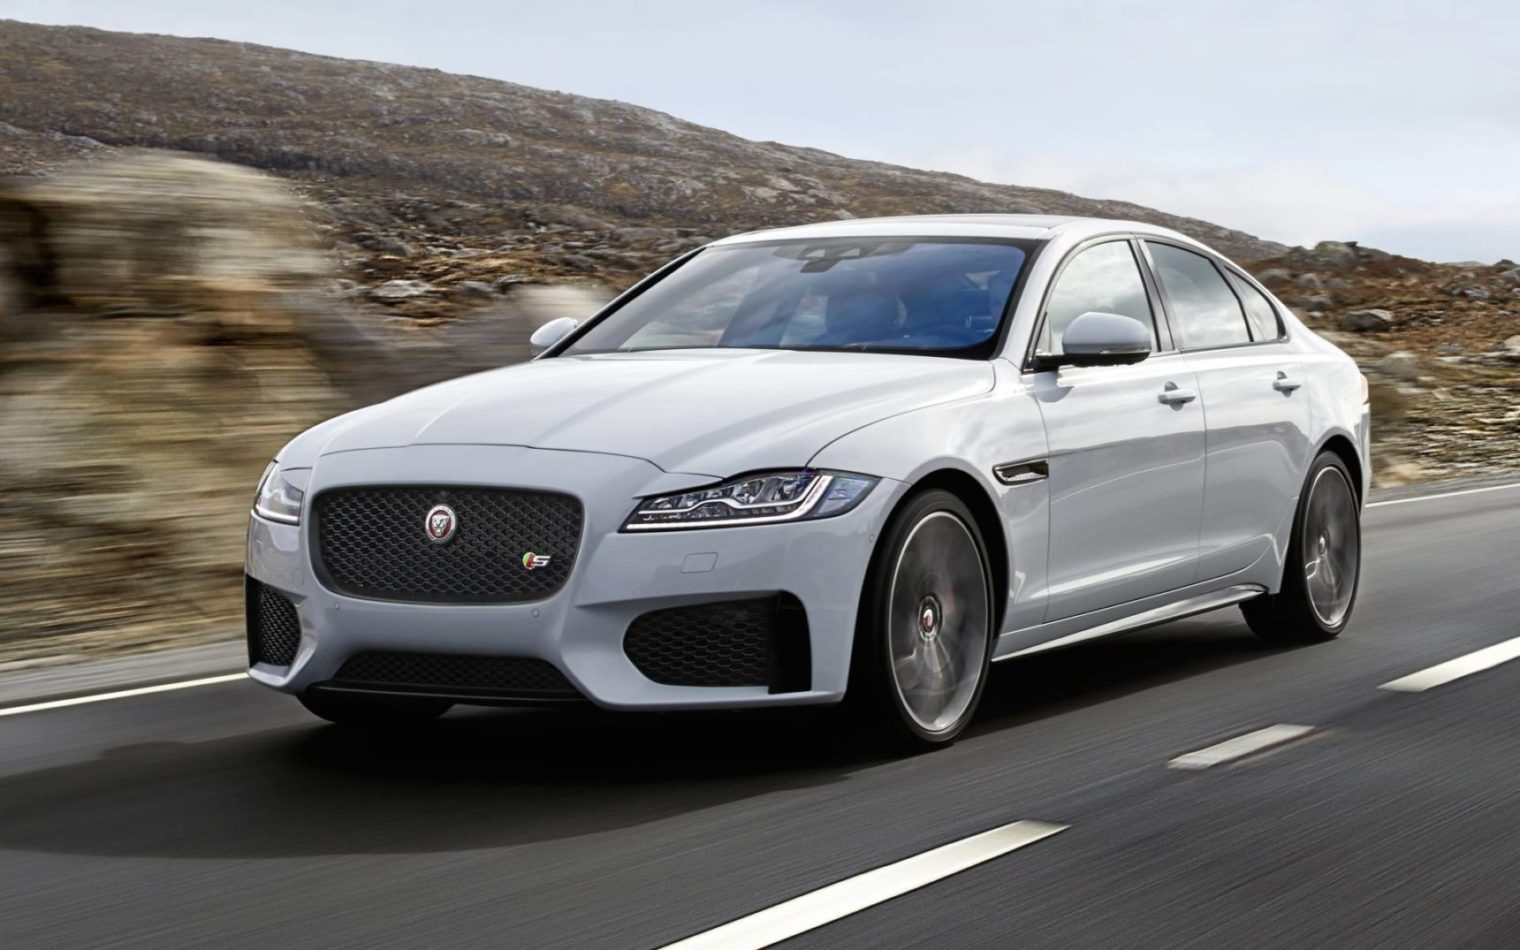 2021 Jaguar XF Prices Reduced By 18% In The UK To Boost Sales